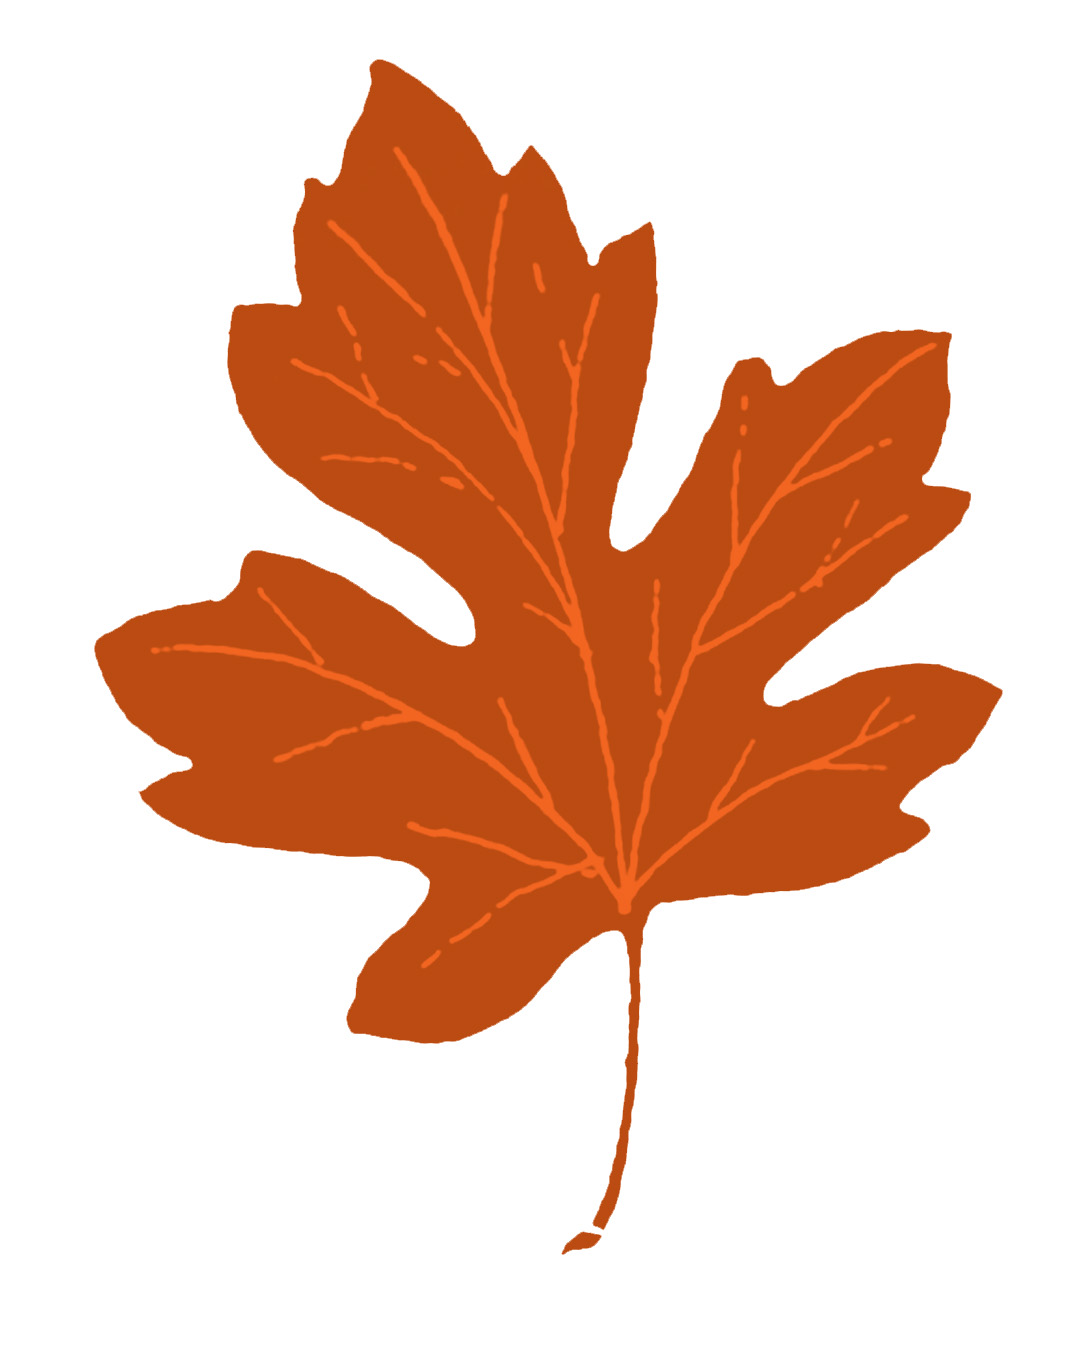 Vintage Fall Clip Art - Maple Leaves - The Graphics Fairy